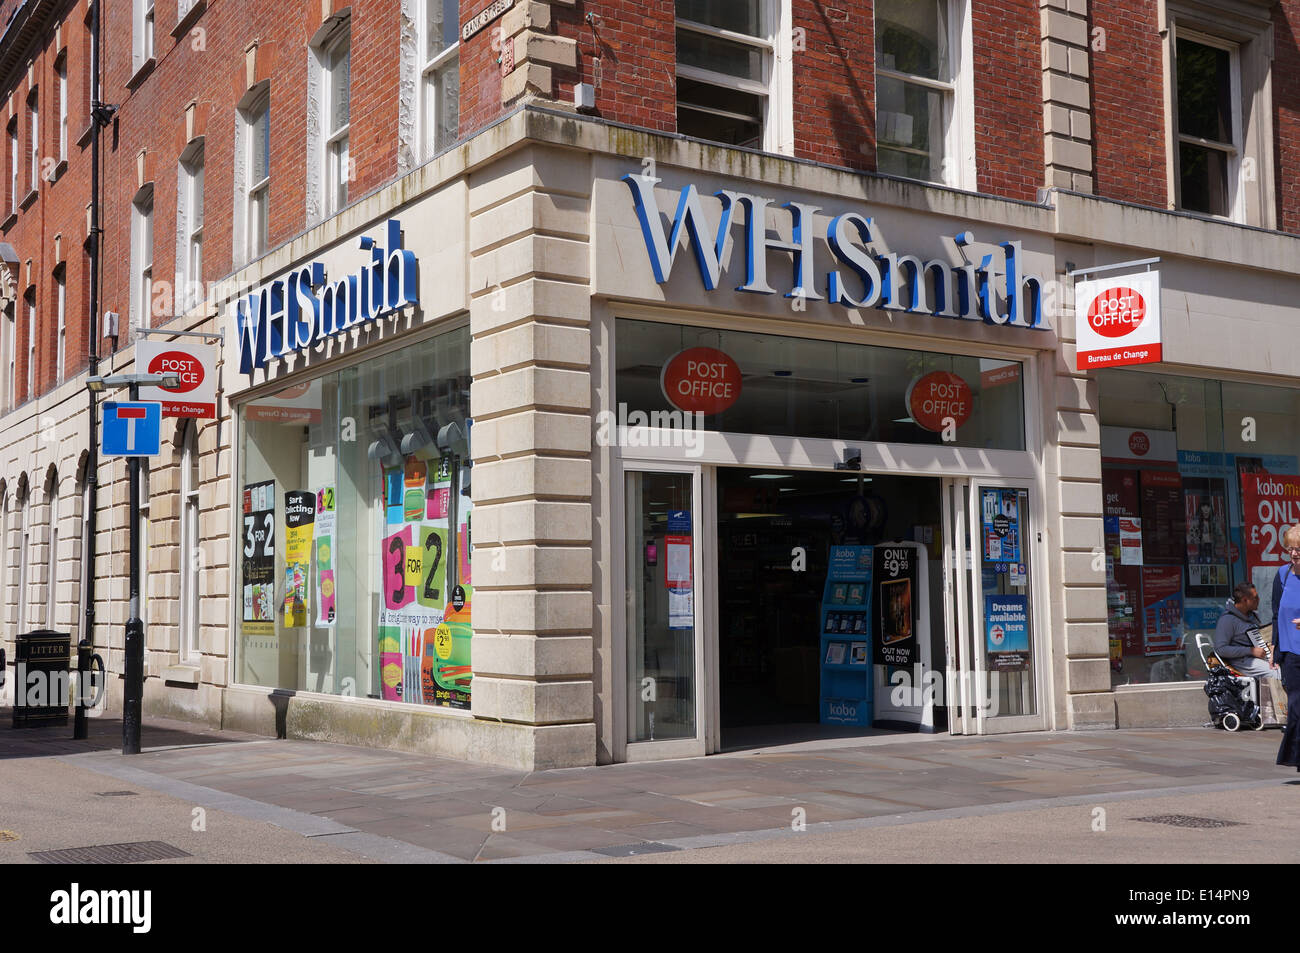 wh smith newsagents and post office in worcester - Stock Image